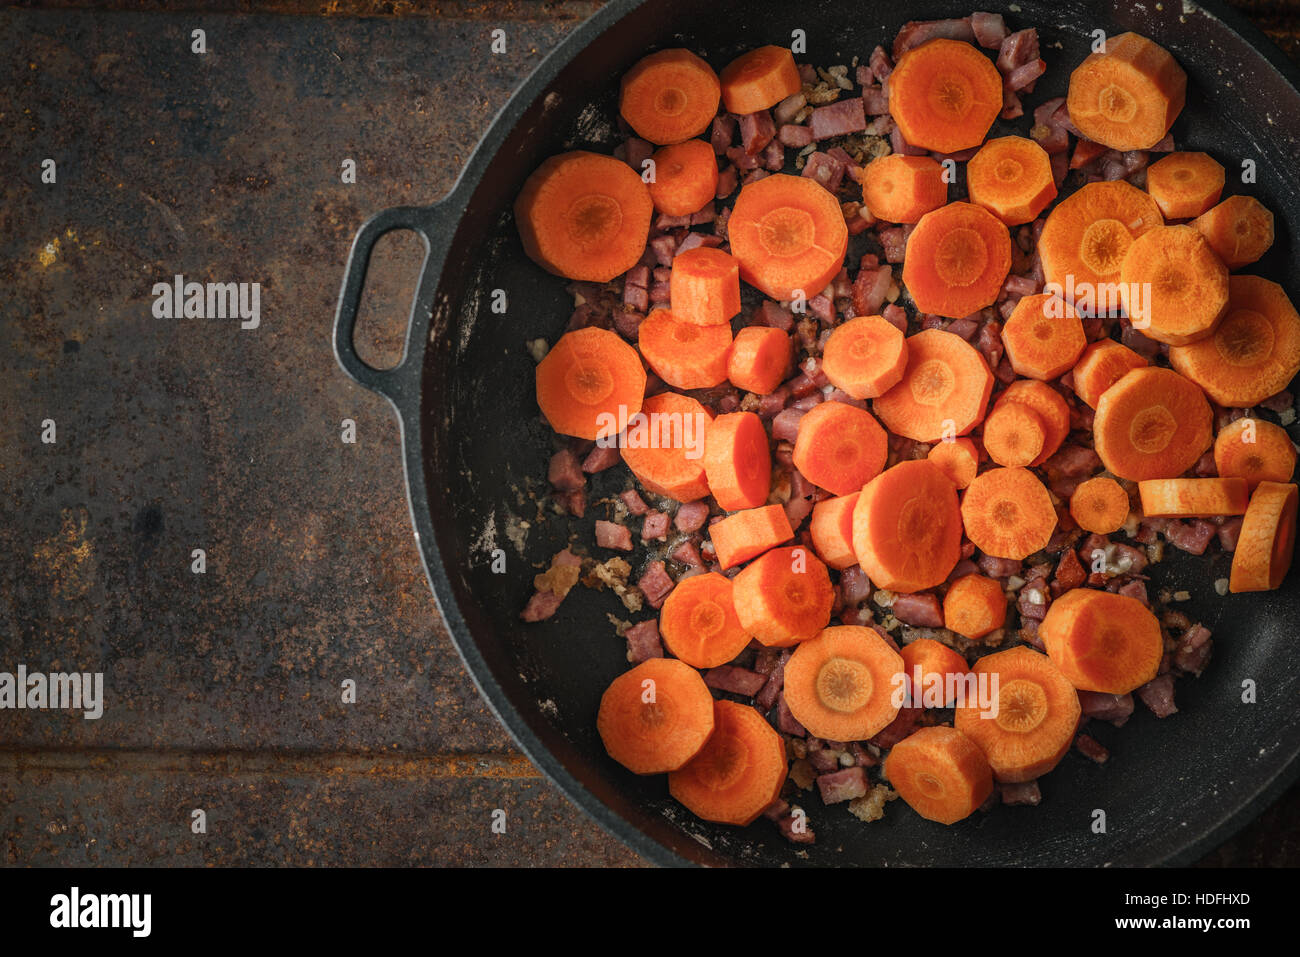 Carrots and bacon in the pan on the metal background - Stock Image